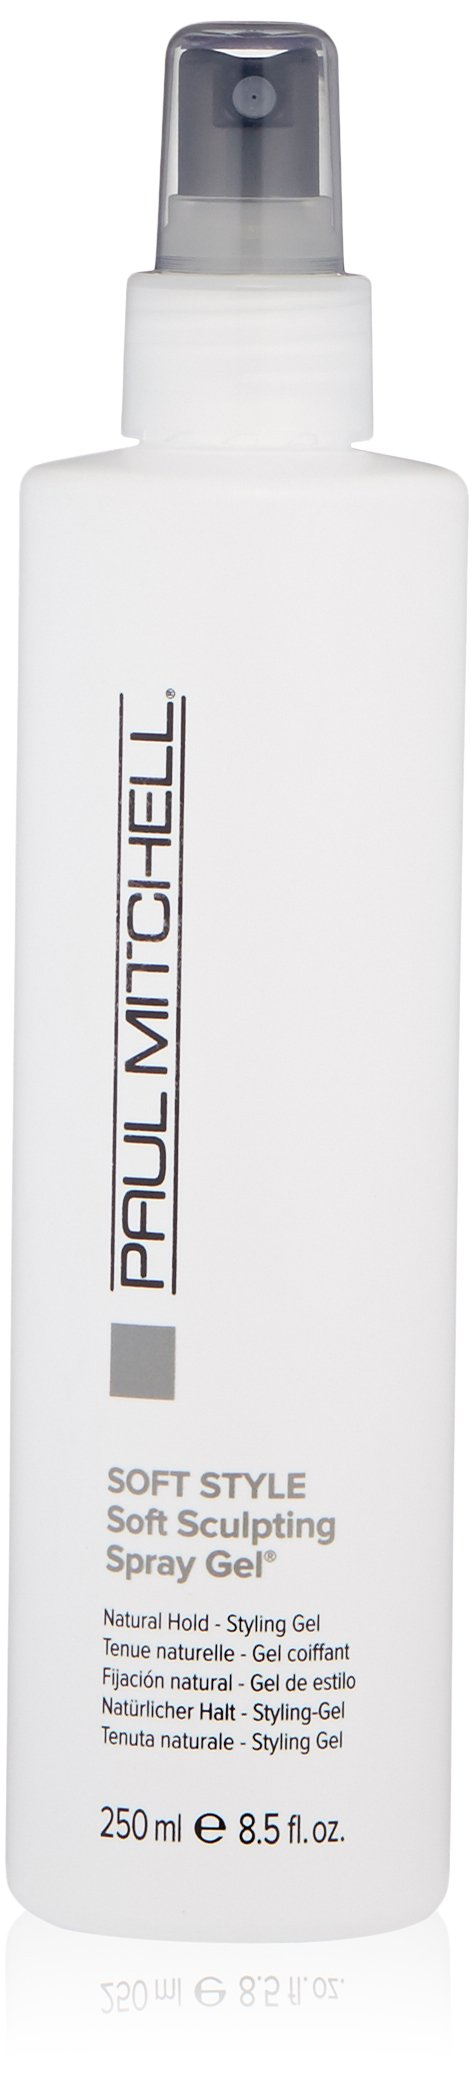 Paul Mitchell Soft Sculpting Spray Gel,8.5 Fl Oz